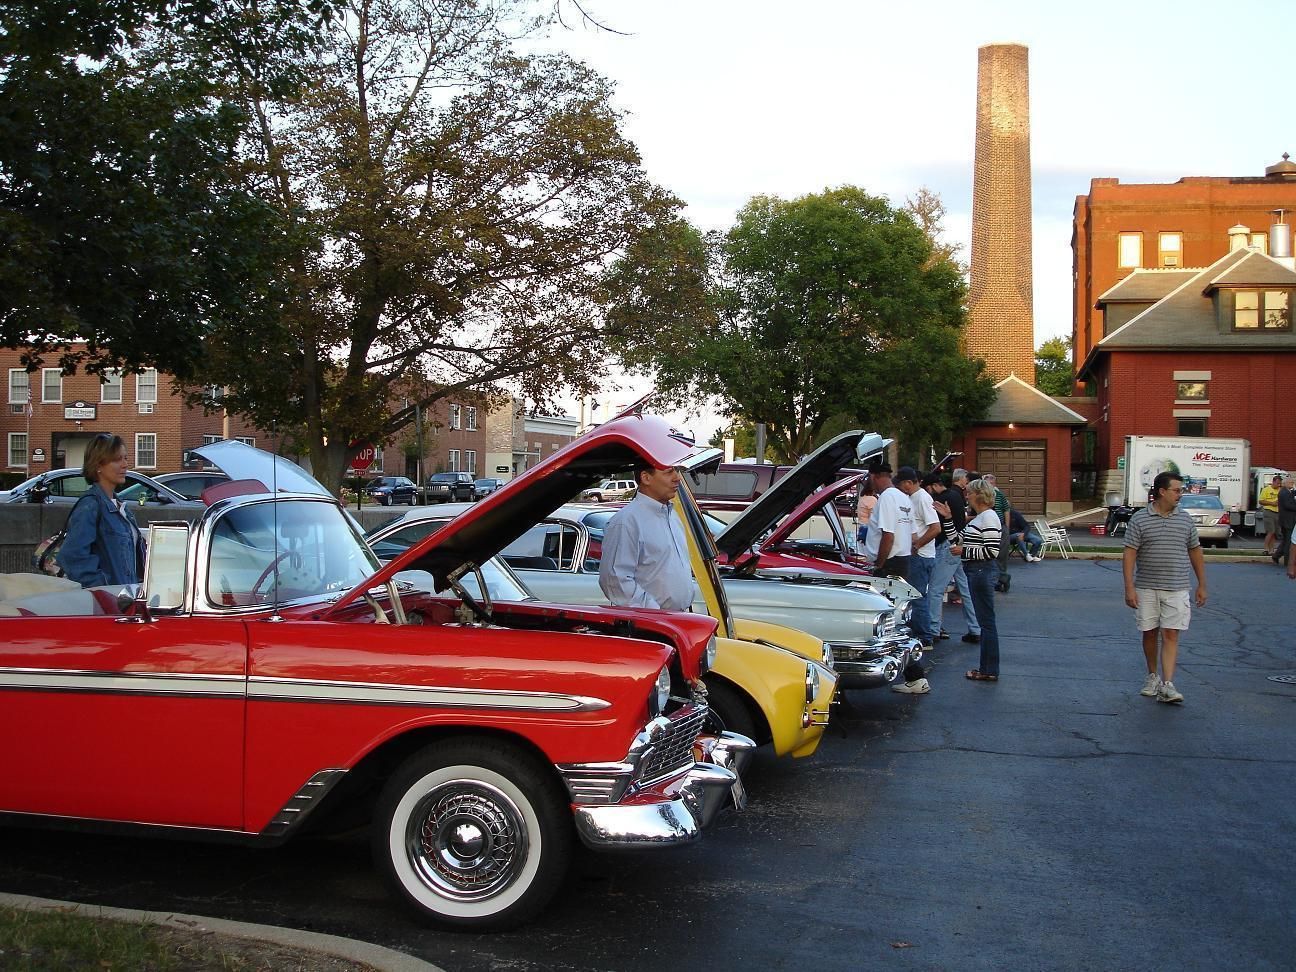 Weekly Car Show Fills Out Thursday Nights In Geneva Chicago Tribune - Weekly car shows near me